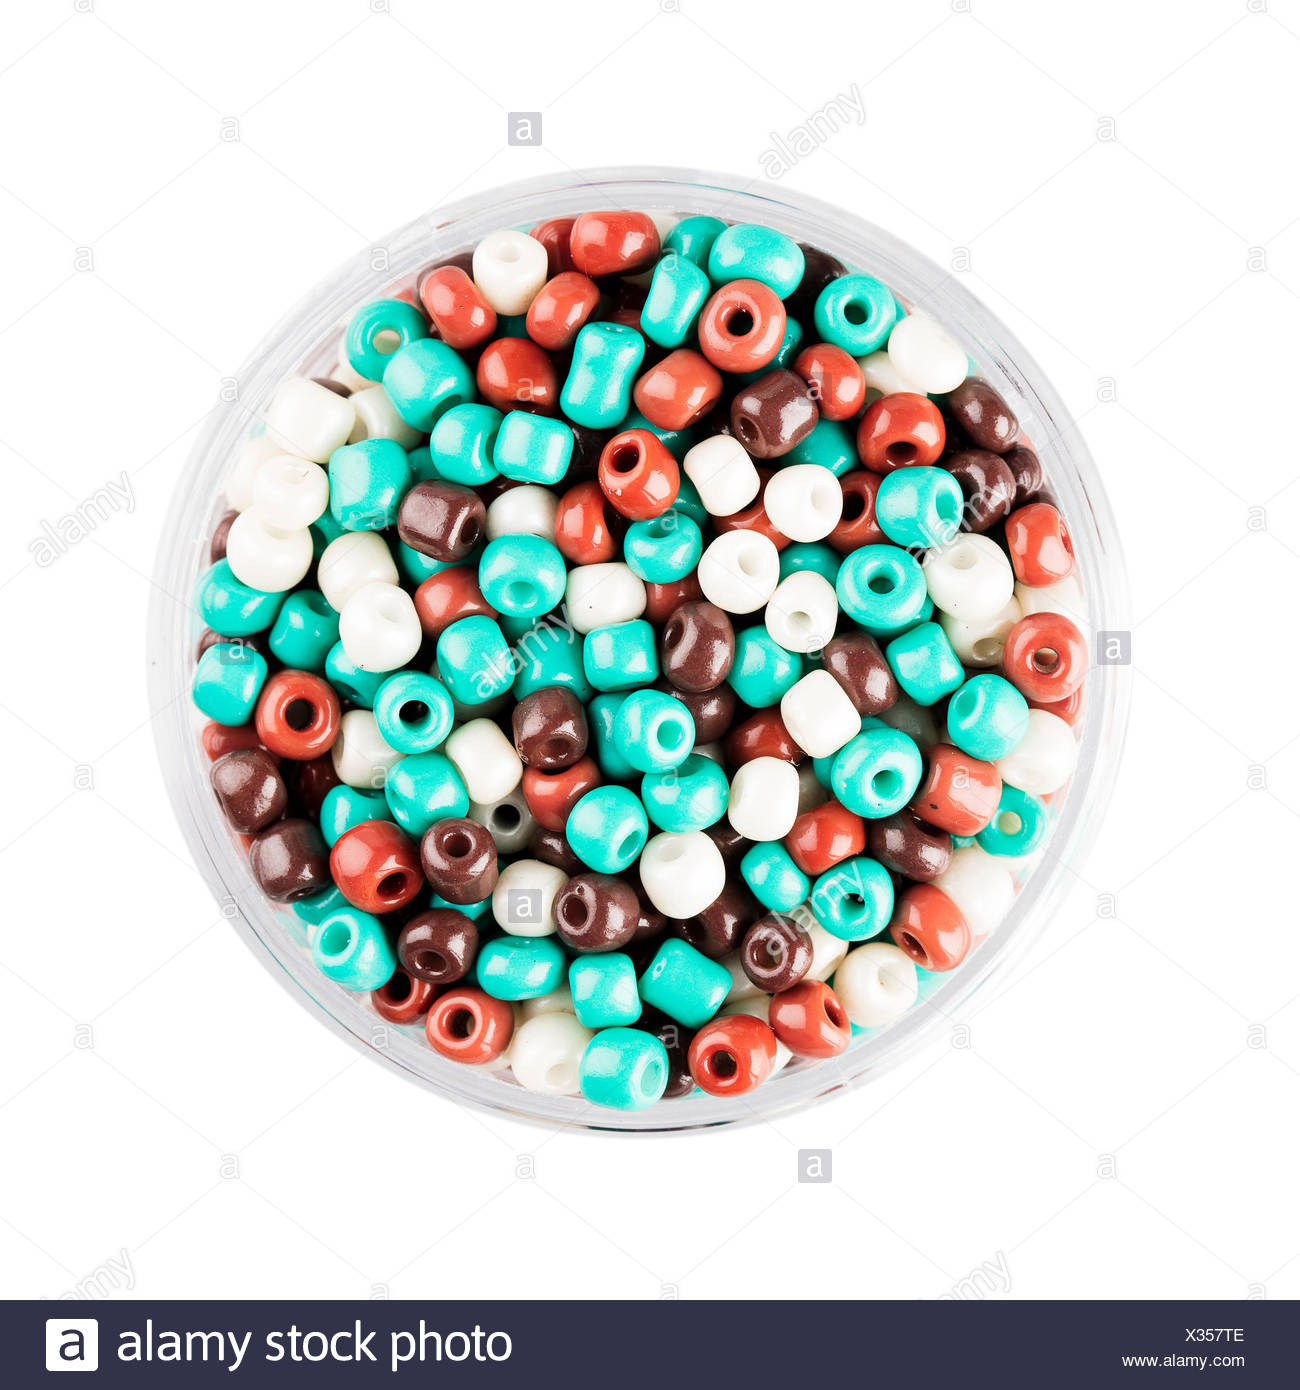 Colorful Glass Seed Beads Stock Photo: 277325790 - Alamy